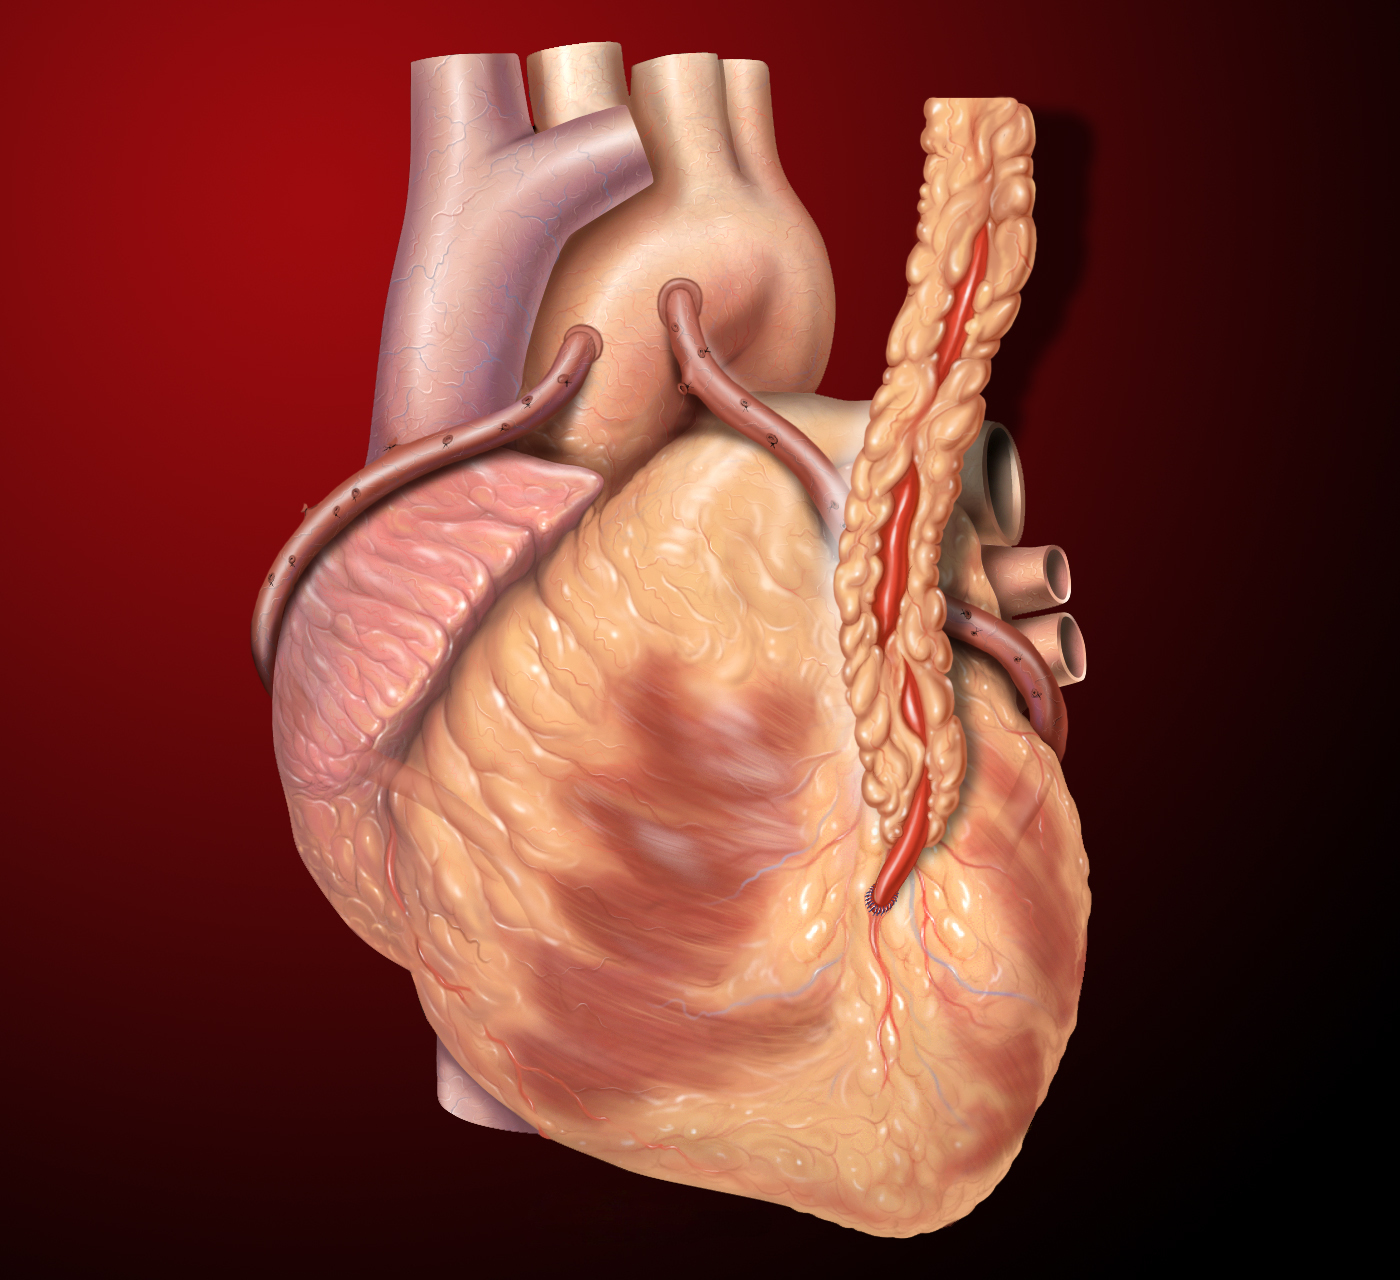 hight resolution of heart bypass surgery explained in incredible pictures